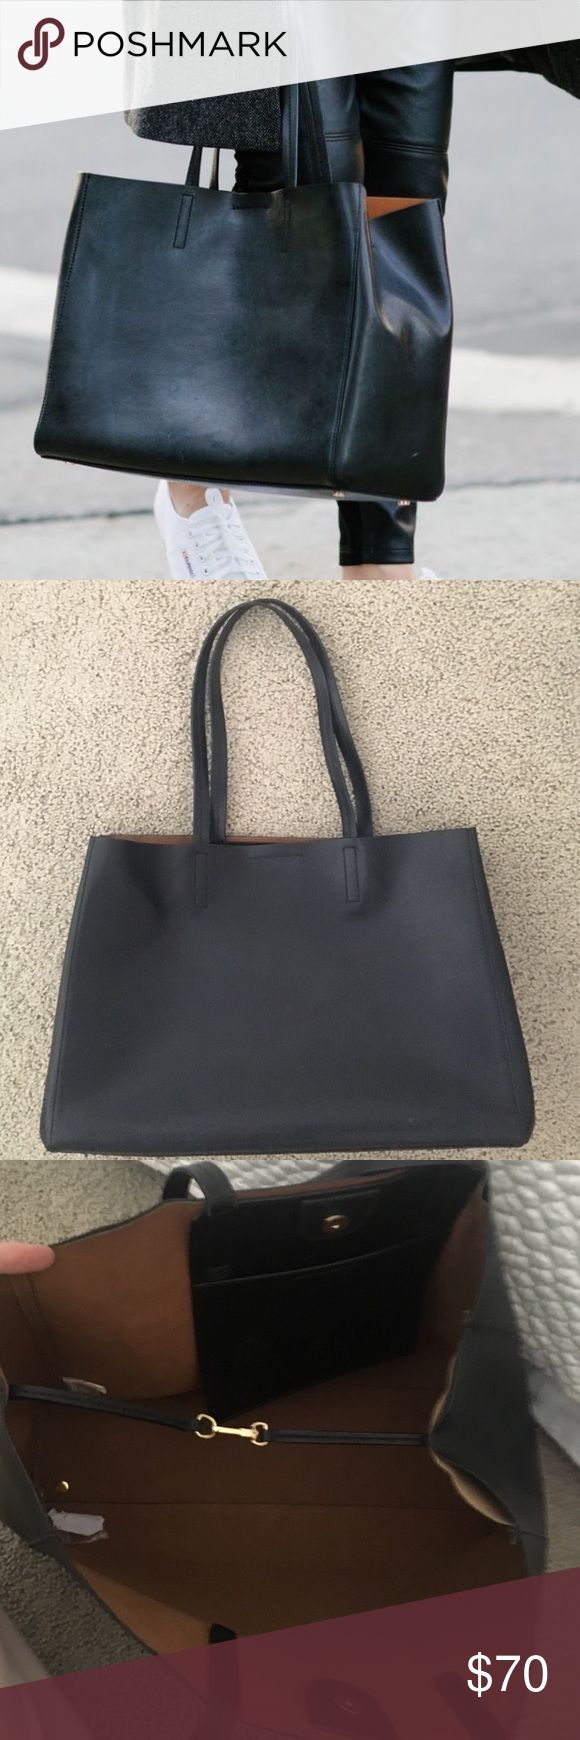 Banana Republic Black Leather Tote Bag Banana Republic black leather tote bag with gold hardware . Pocket inside and snap closure. Shows wear as shown in picture but could easily be repaired/glued! This bag is beautiful and still has lots of life! Banana Republic Bags Totes